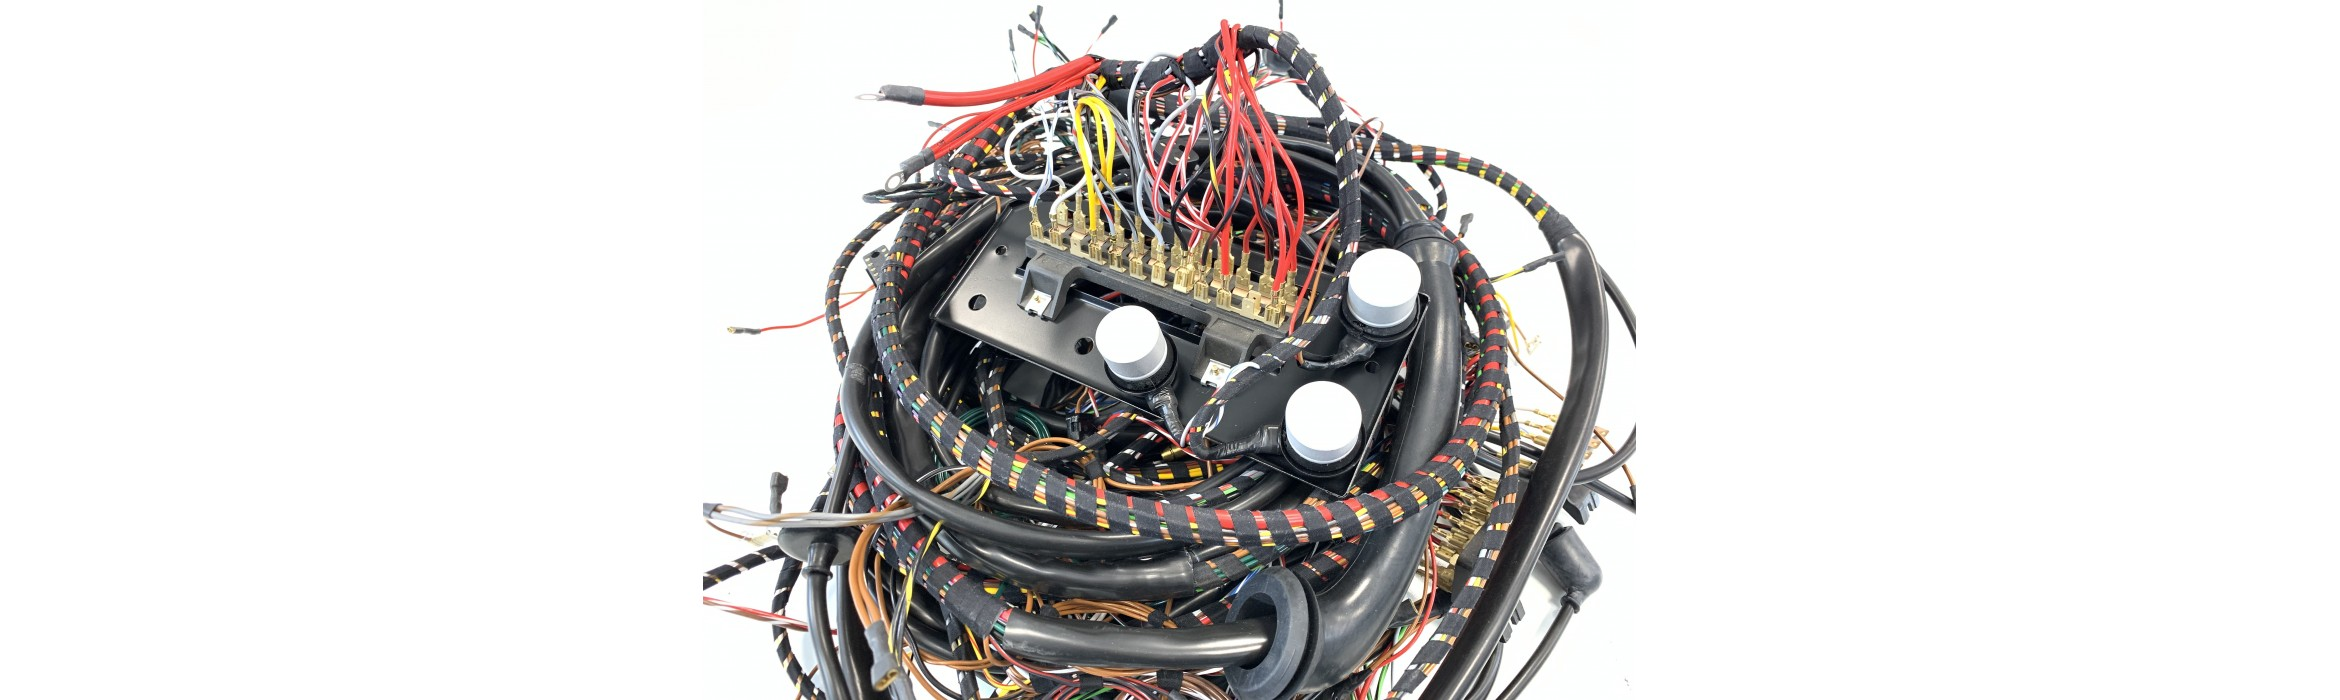 1970 US 914-6 harness